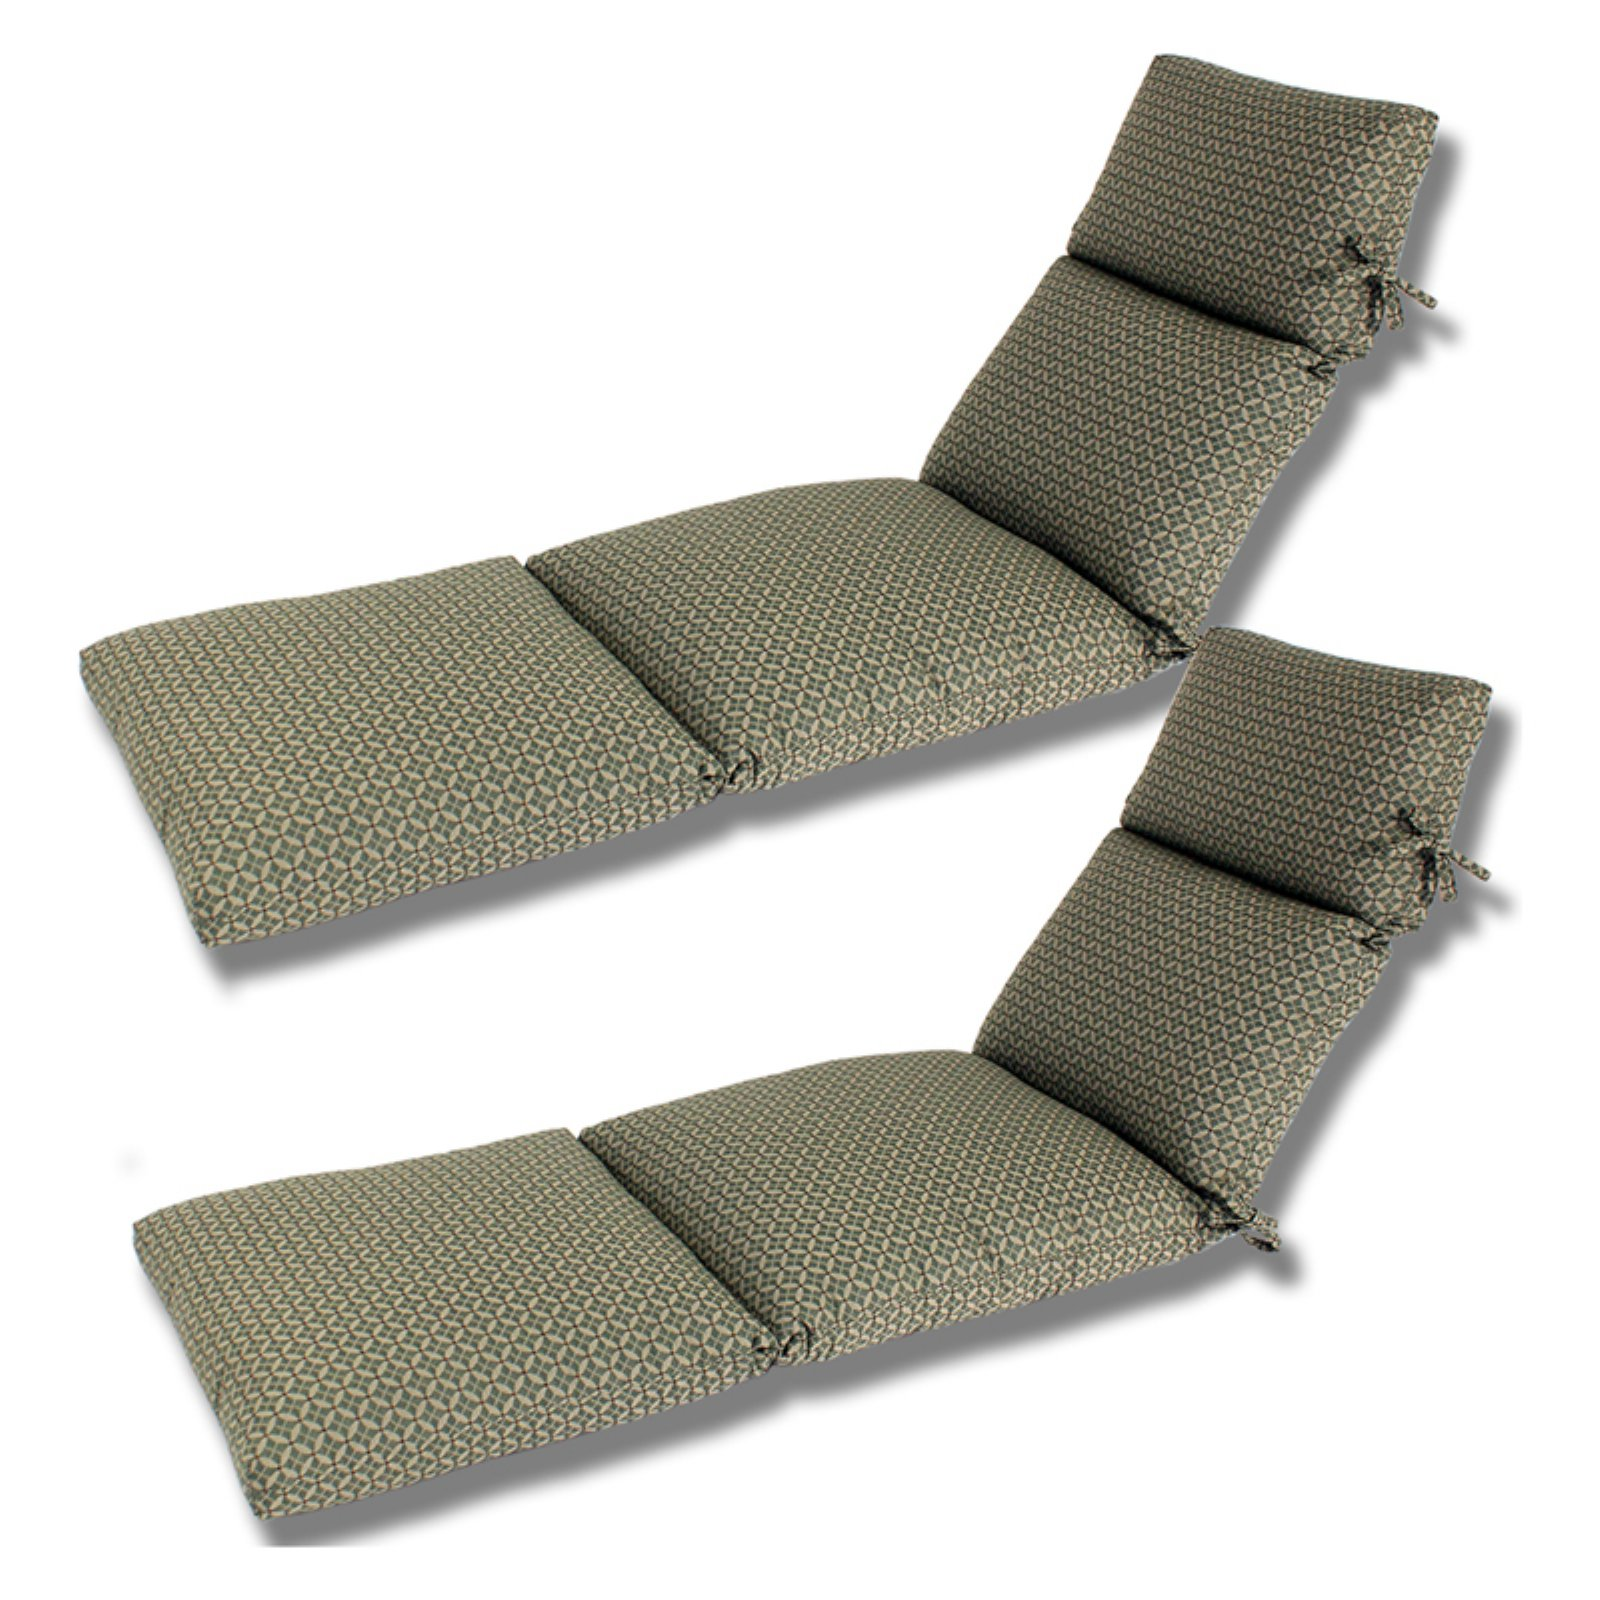 Comfort Classic Channeled Indoor Outdoor Sunbrella Chaise Lounge Cushion Set Of 2